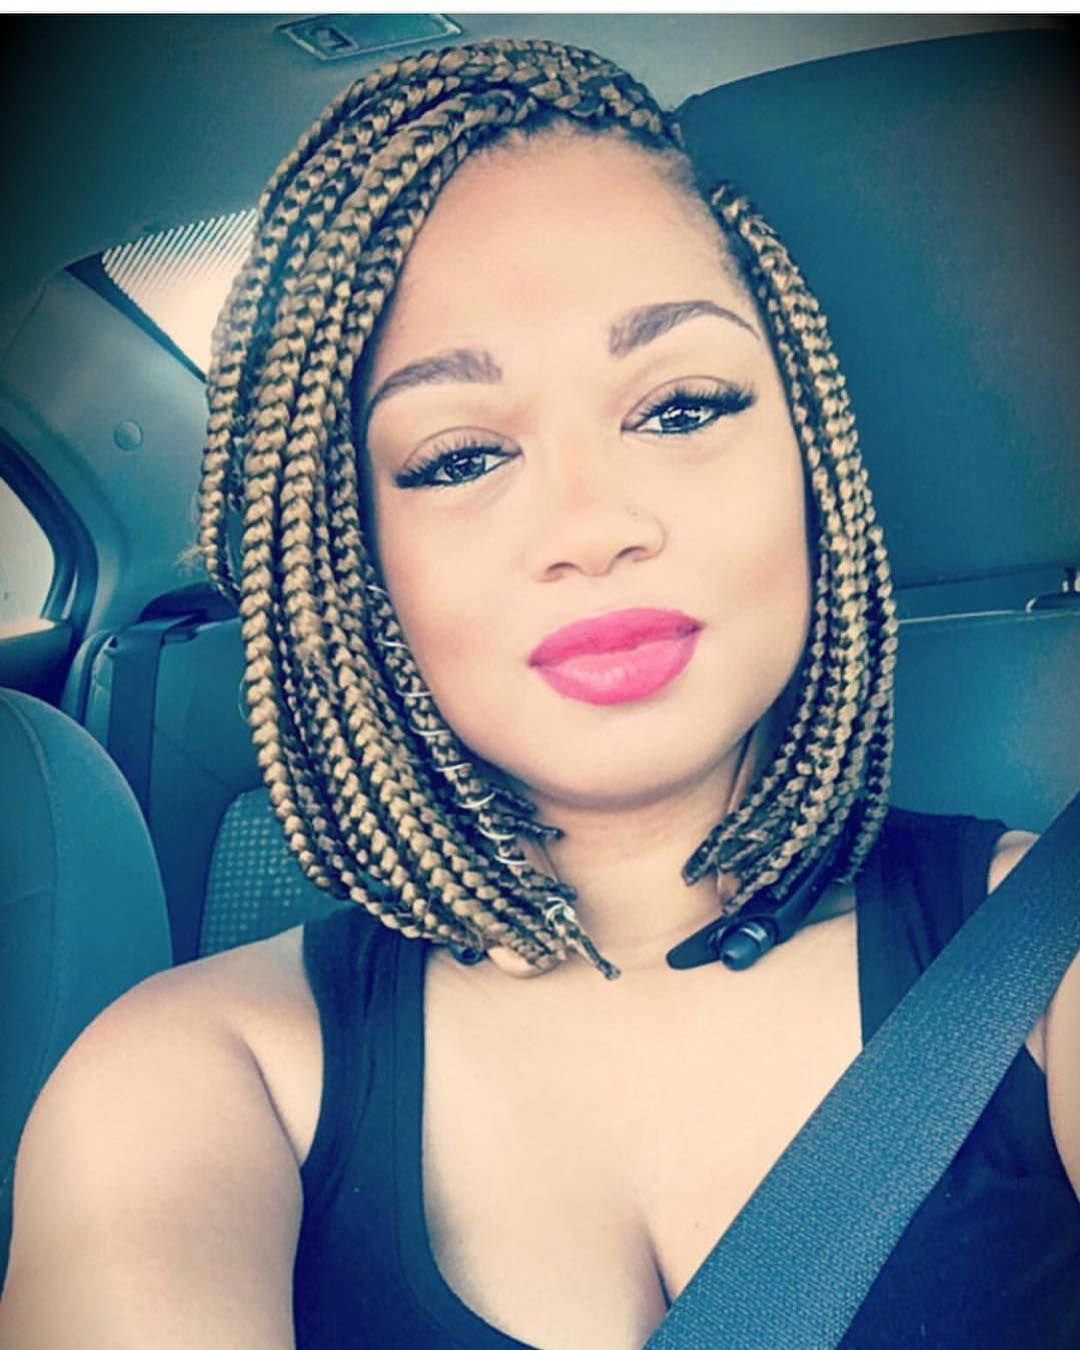 Thebeautybar Addict Is That You Box Braids Book Your